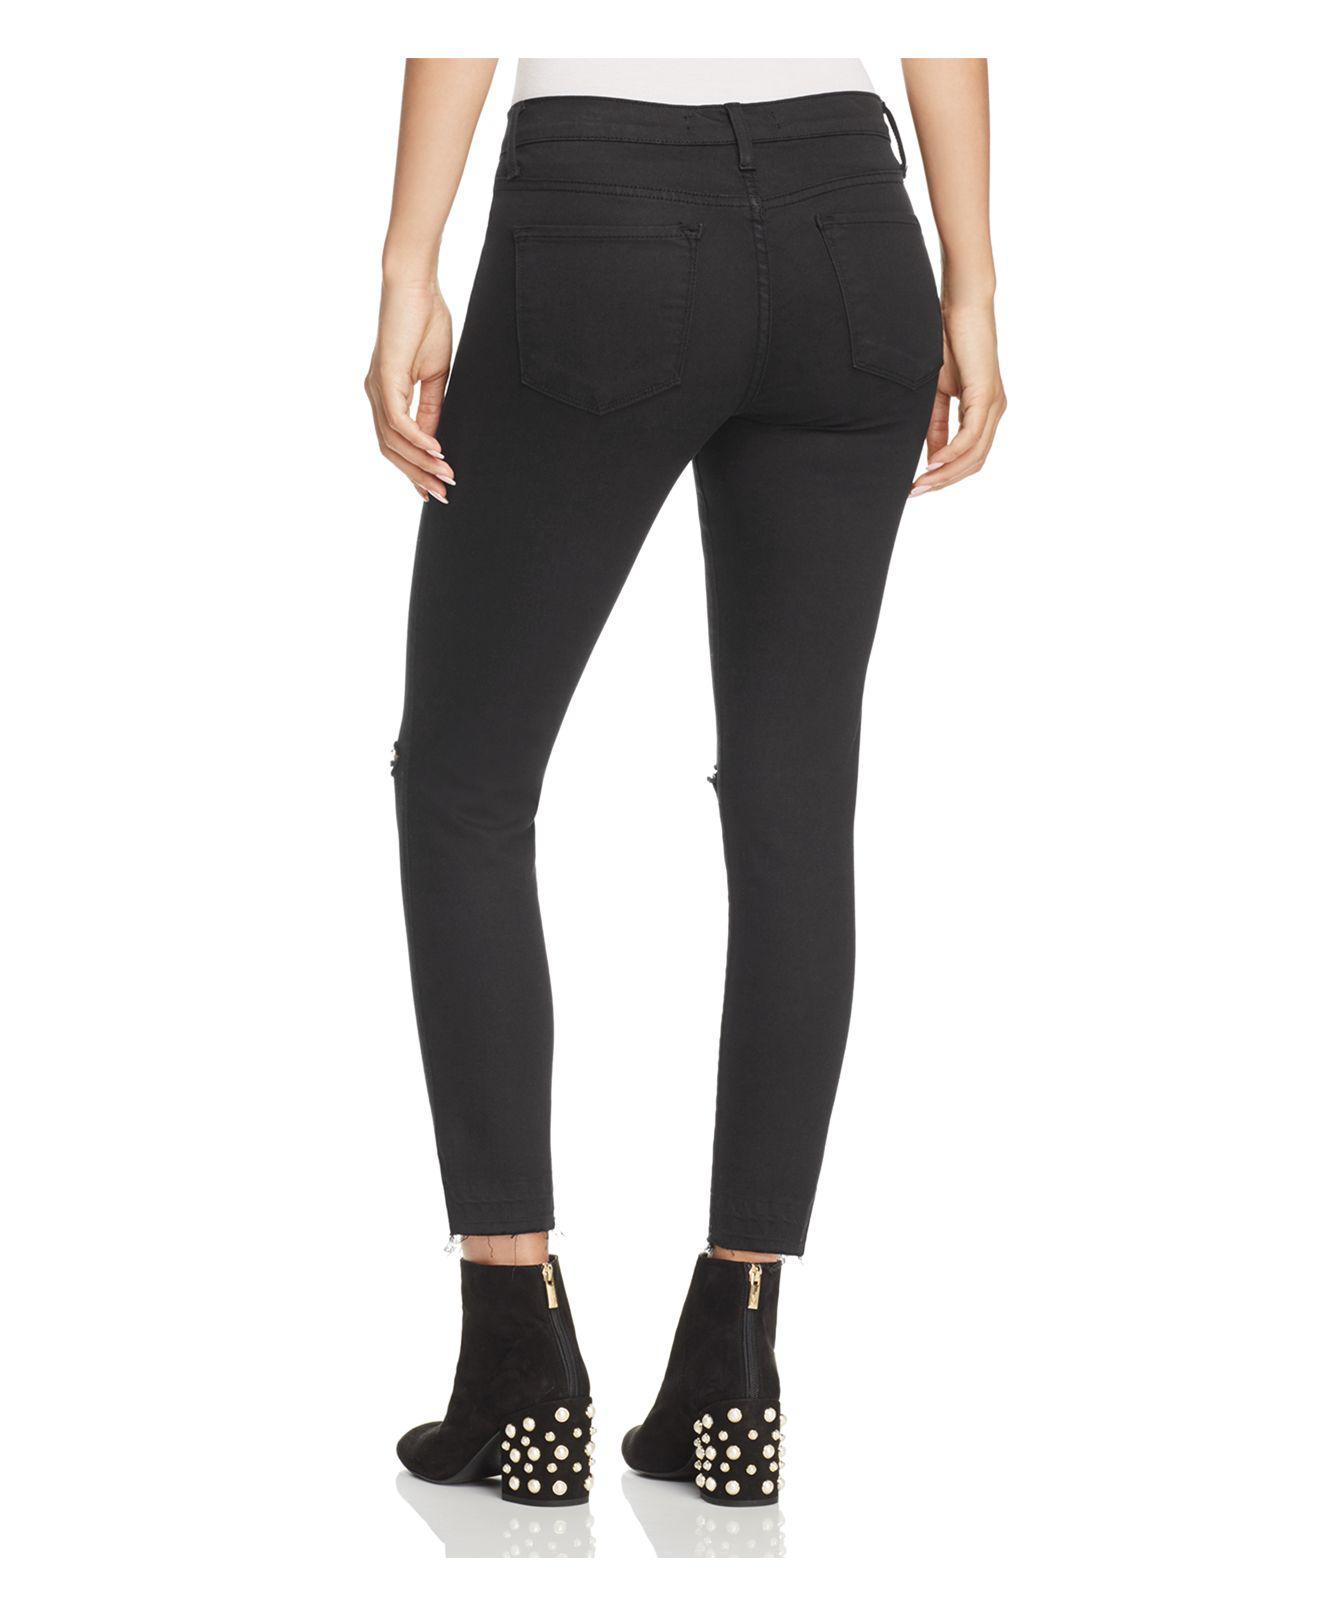 c8053065f09 Lyst - Flying Monkey Ripped Knee Skinny Jeans In Black in Black